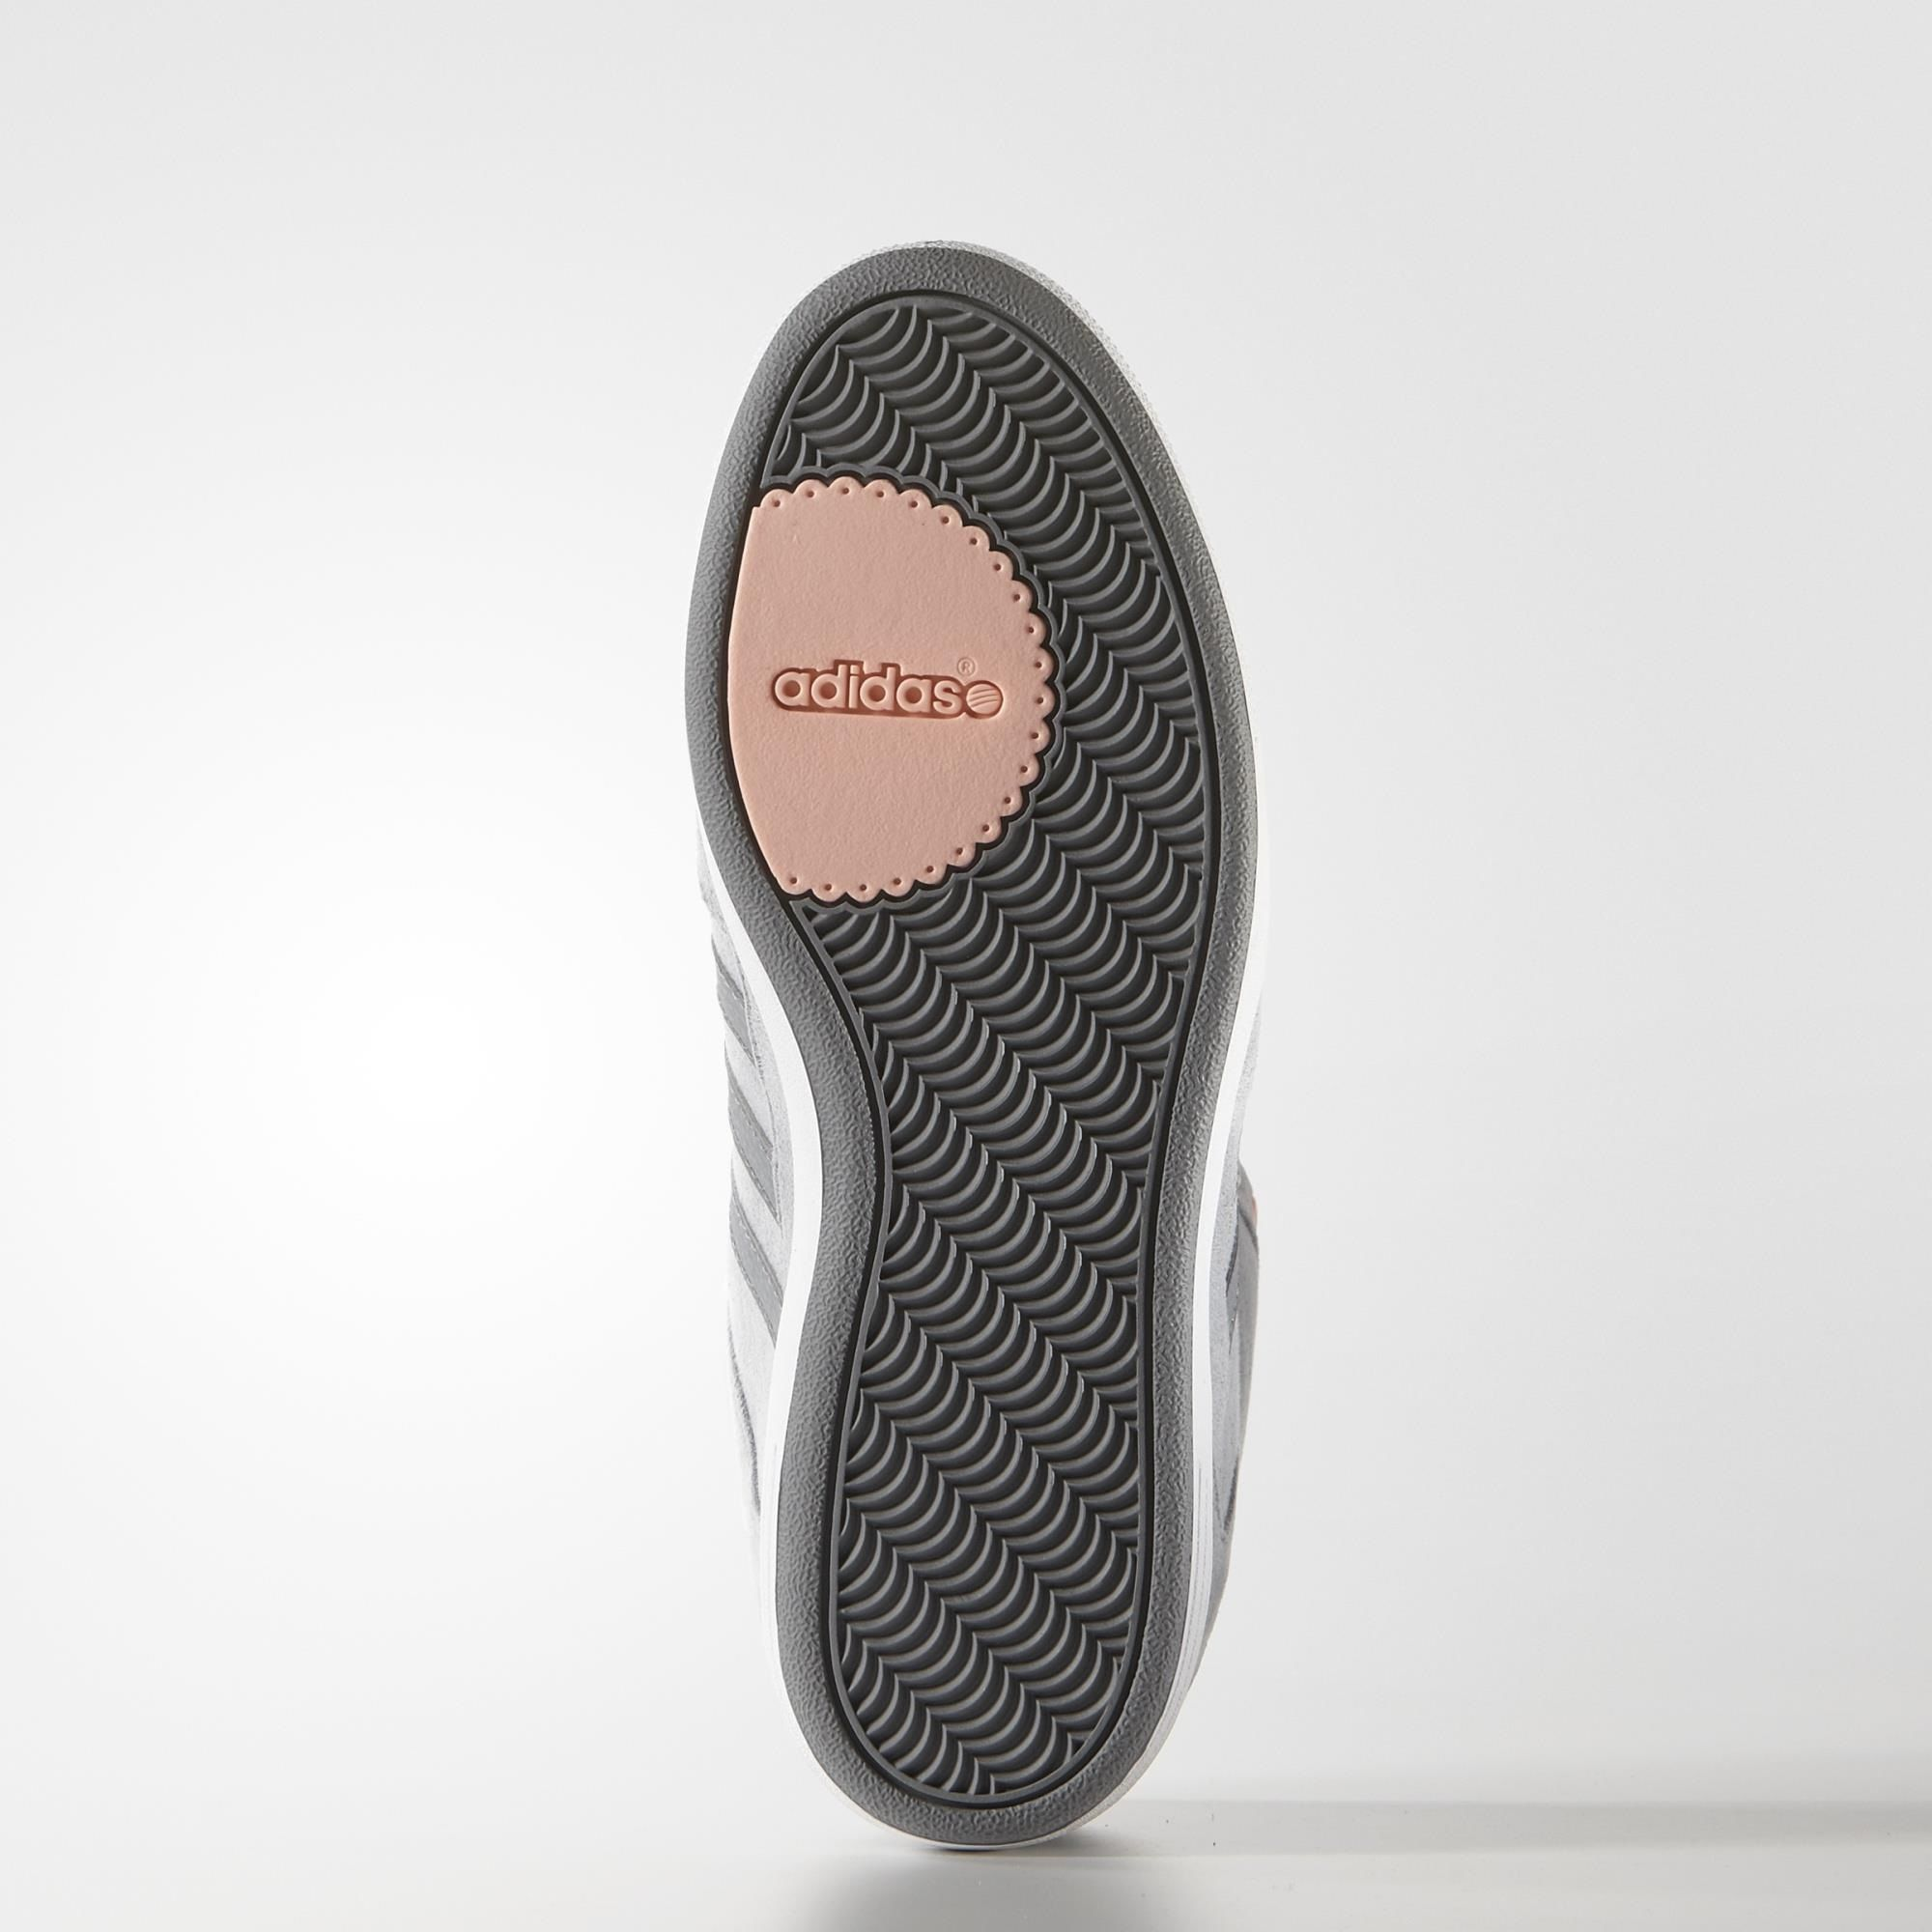 Femmes Chaussure Neo Compensée Super Adidas gy6Ybf7